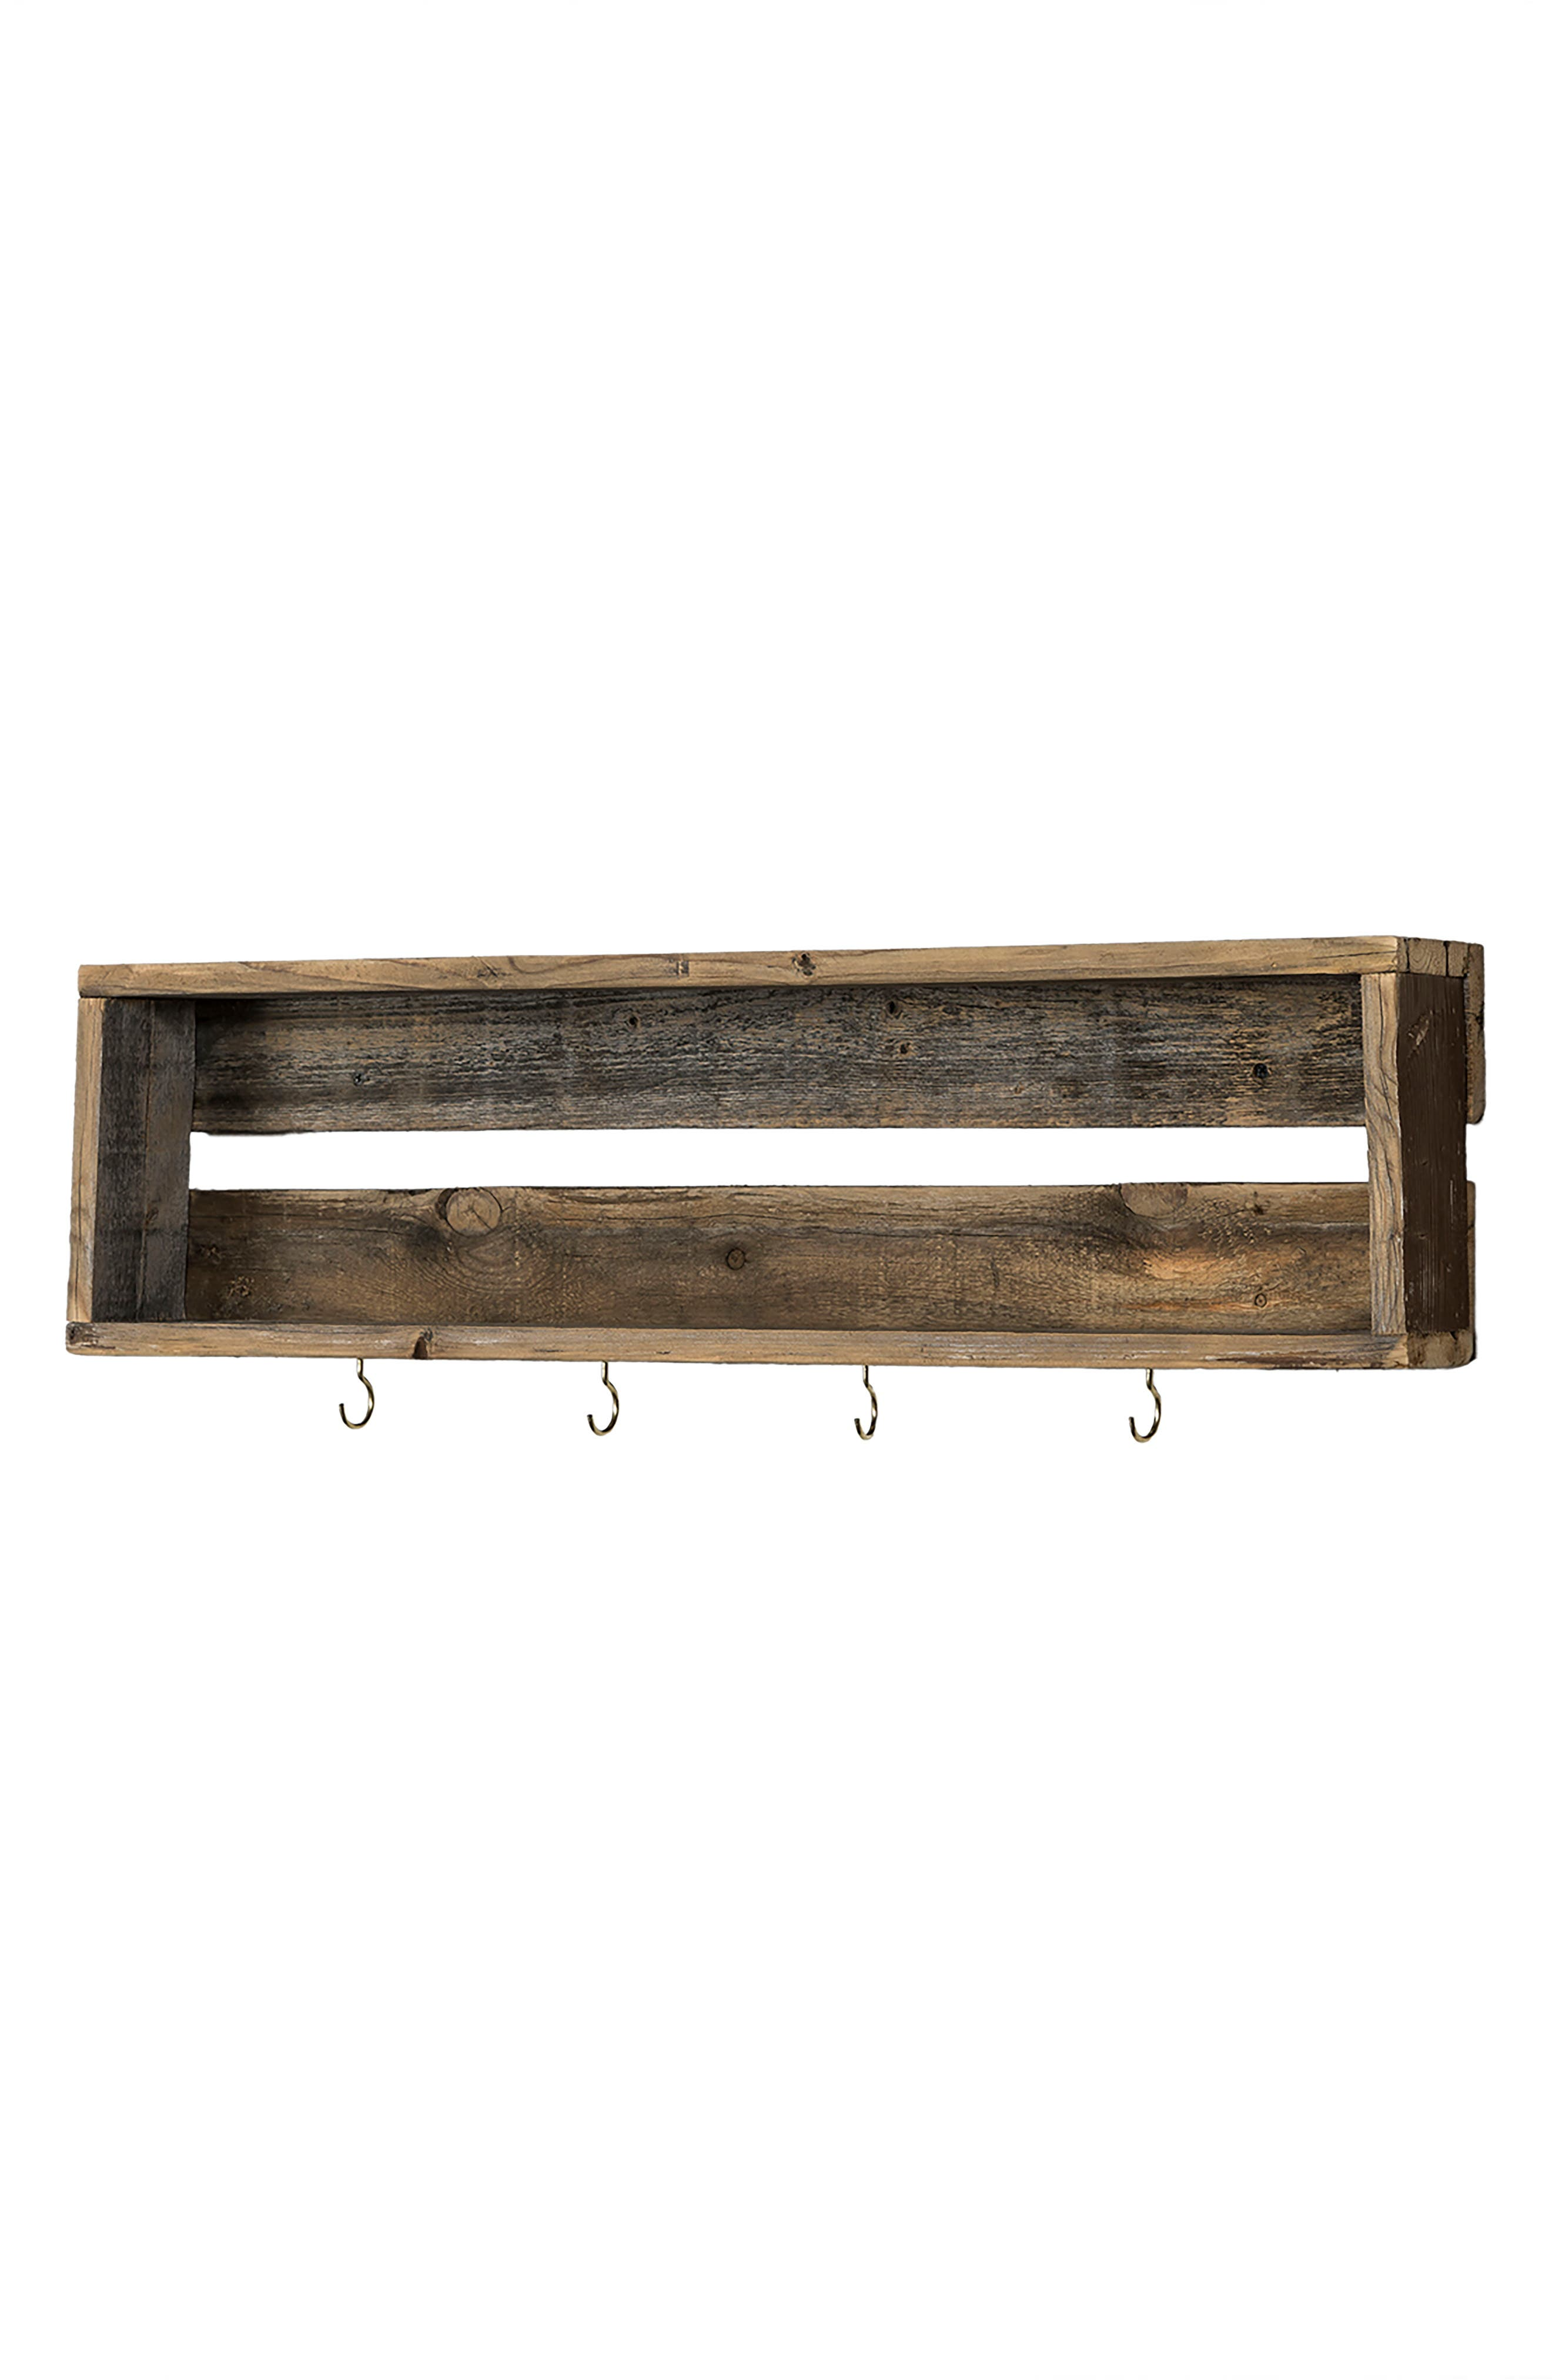 Repurposed Wood Shelf with Hooks,                             Alternate thumbnail 6, color,                             Barnwood